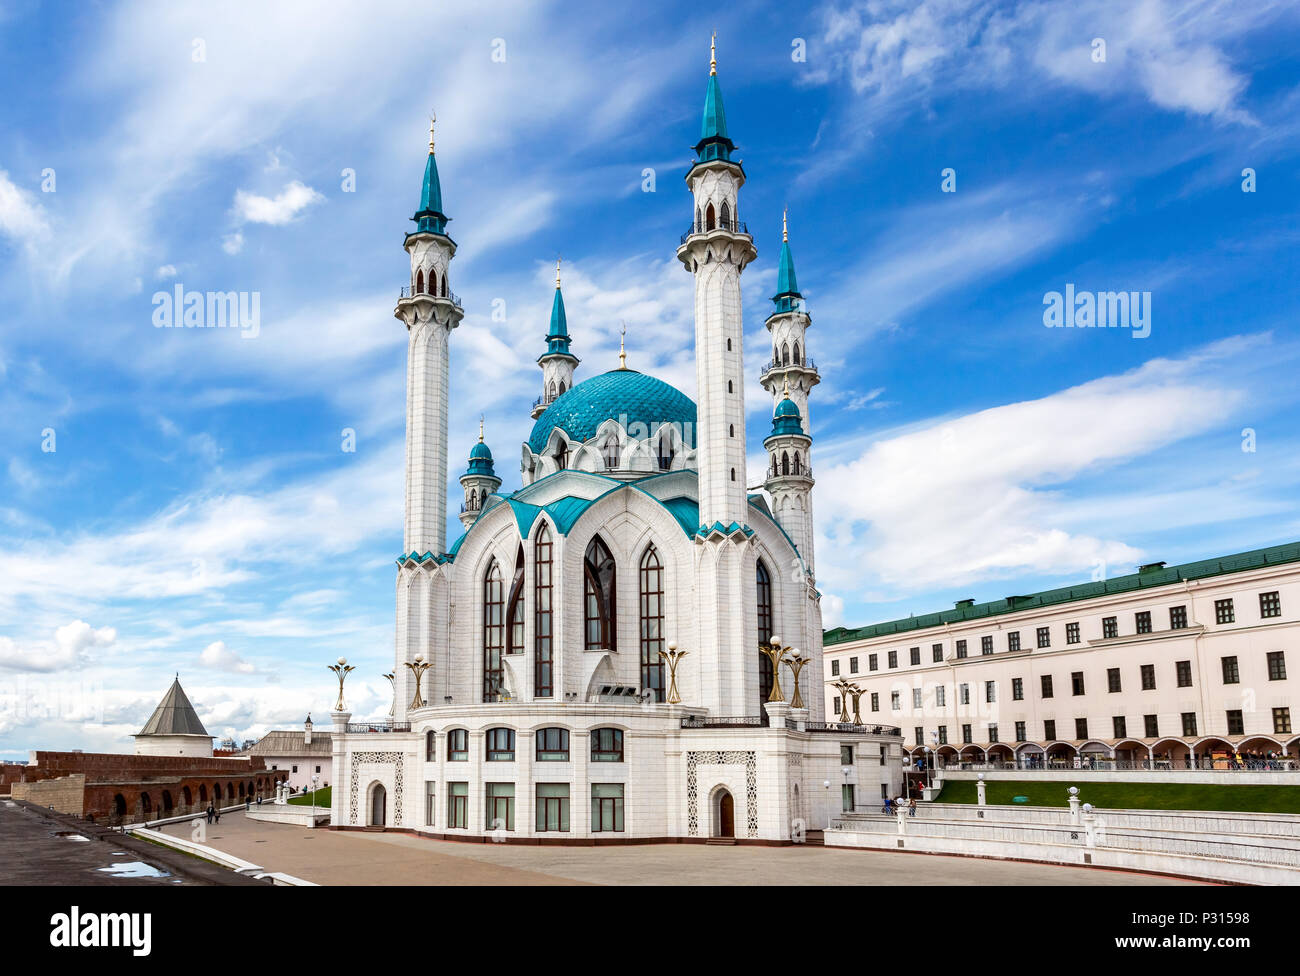 Kazan, Russia - June 10, 2018: Famous Kul Sharif mosque in Kazan Kremlin - Stock Image